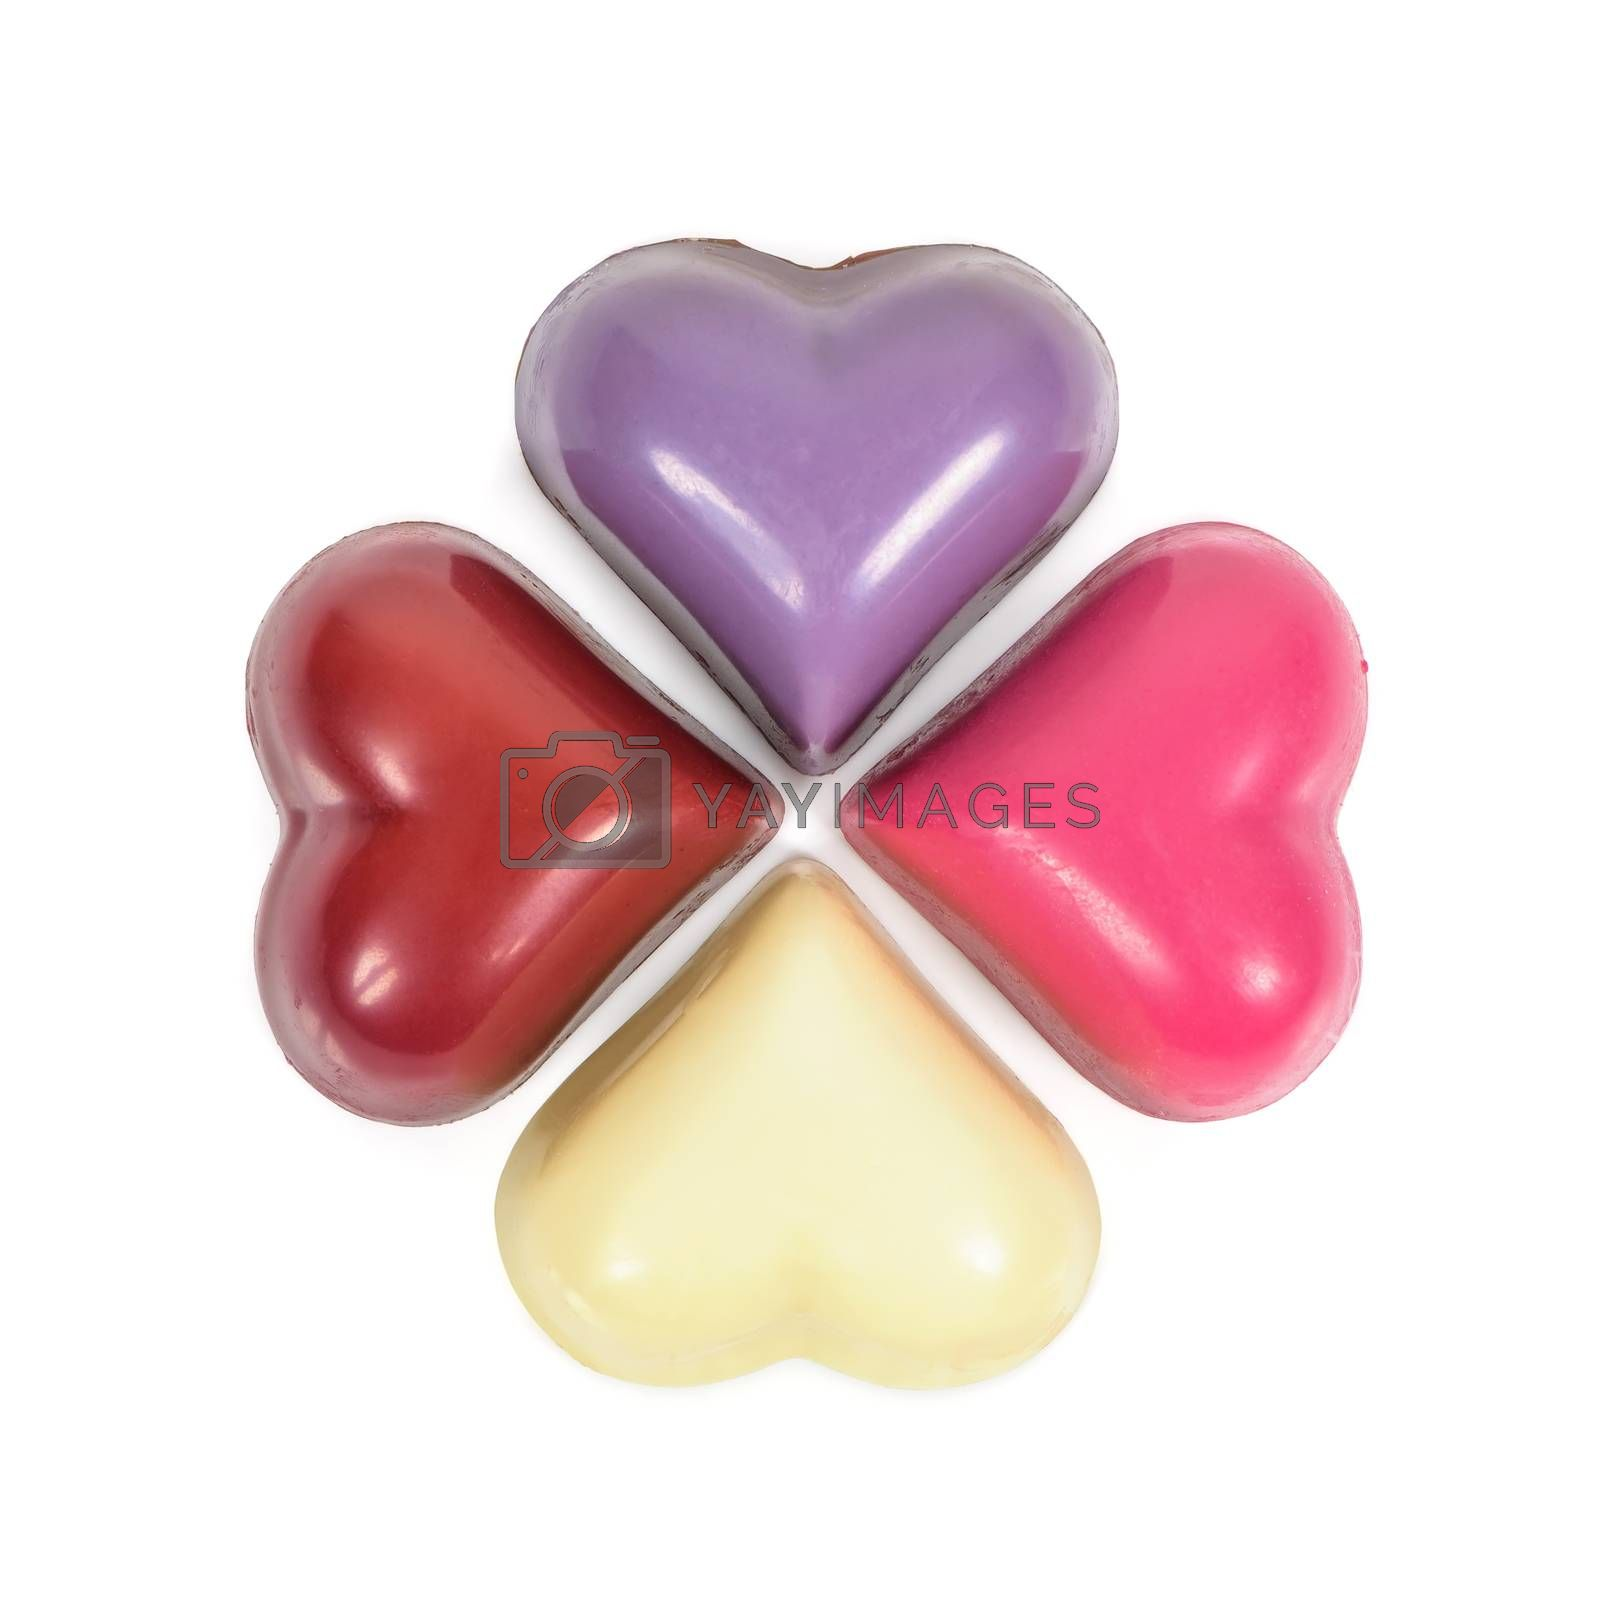 Colorful heart shaped chocolates isolated on white background with clipping path